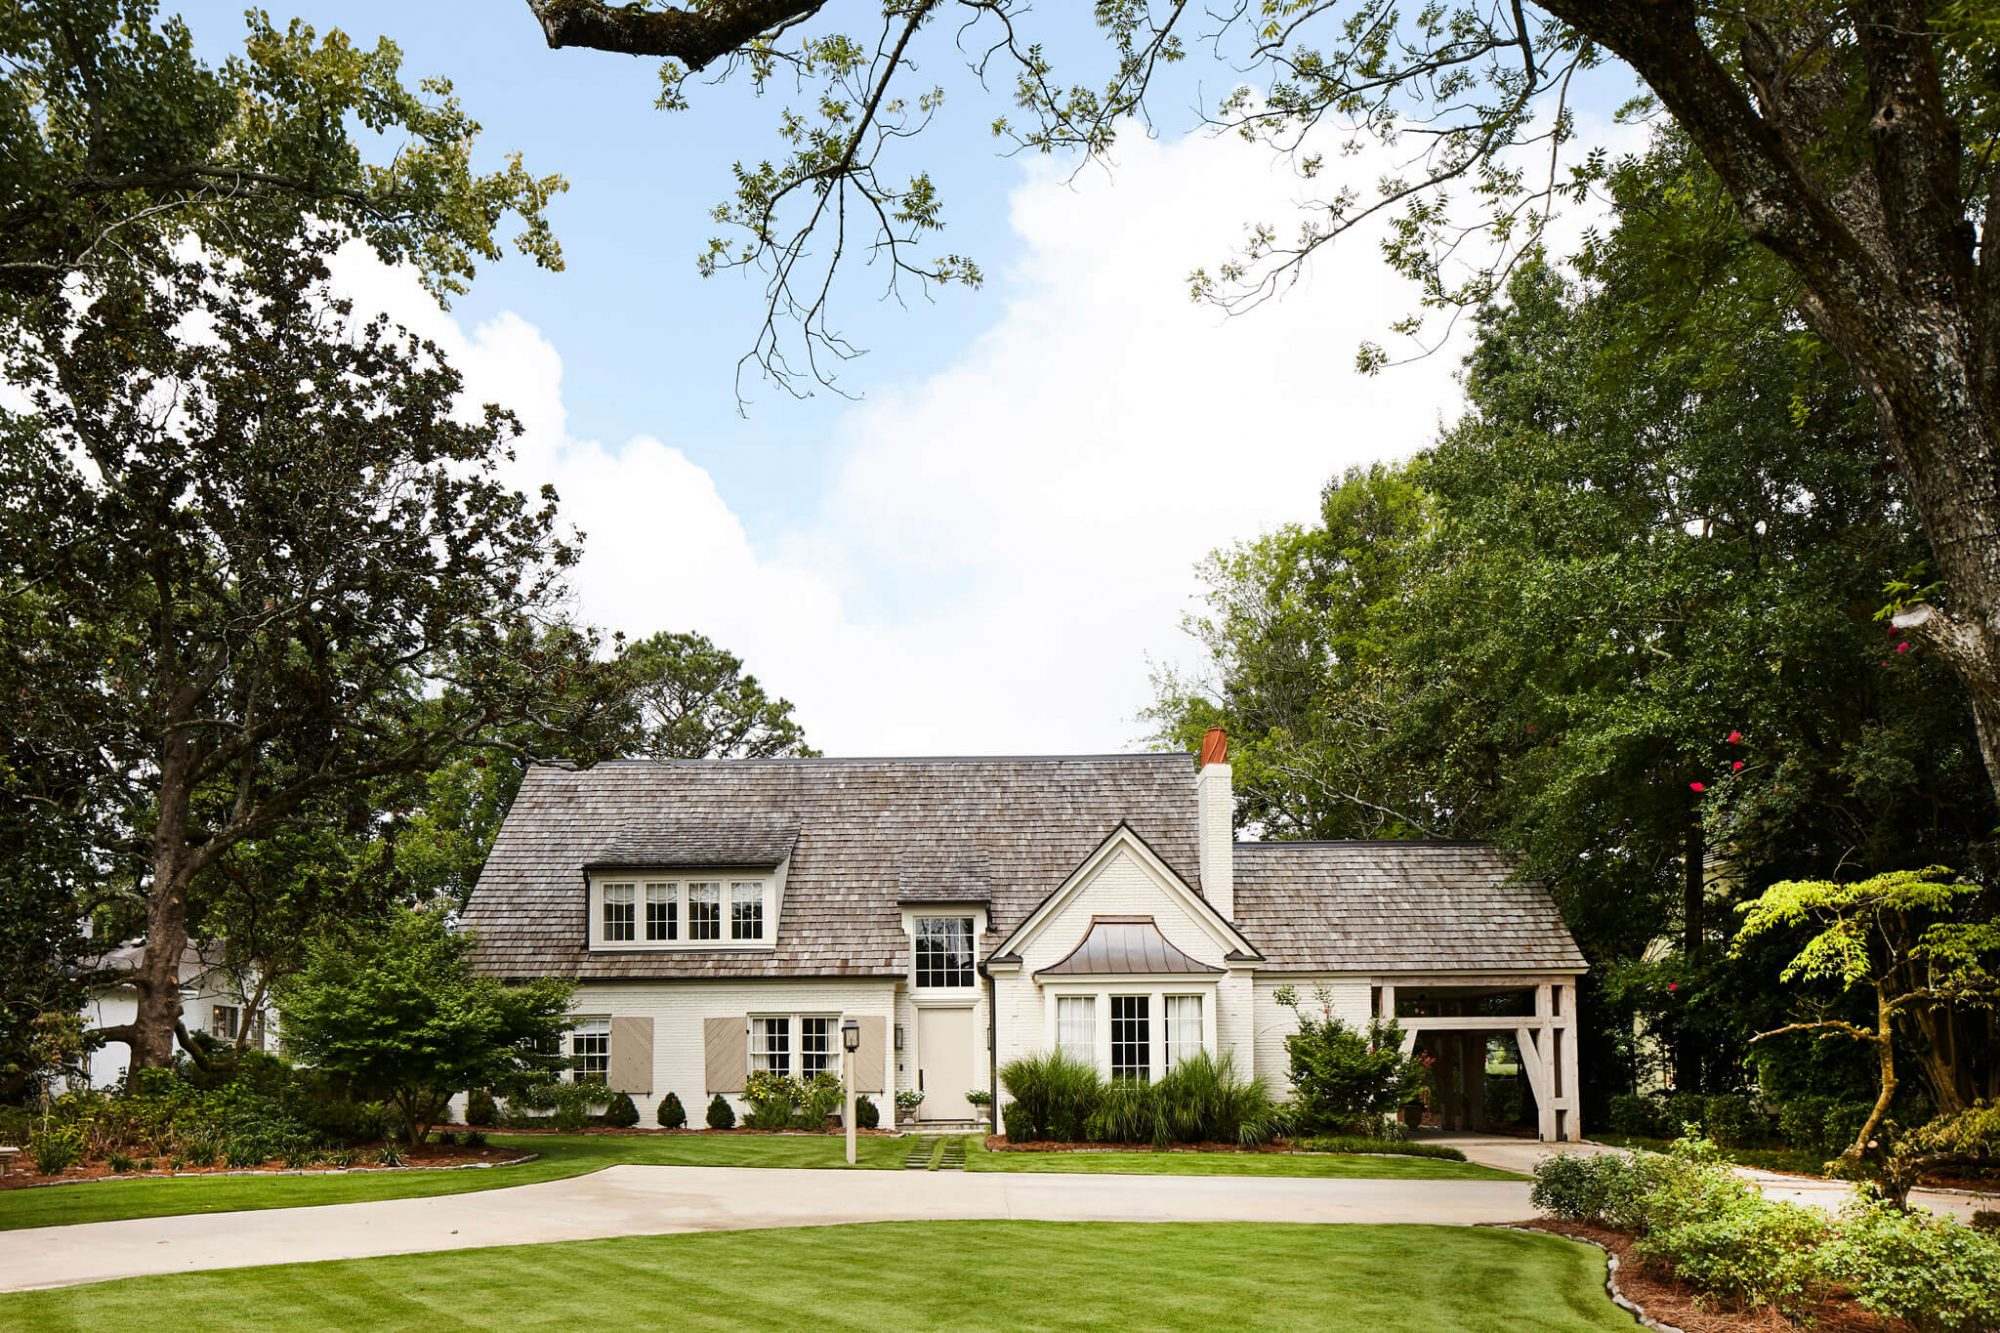 Converted farmhouse with shingled roof features a neutral color palette. Farrow and Ball's Stony Brick was used for the door, and archived color, Clunch, for the brick.